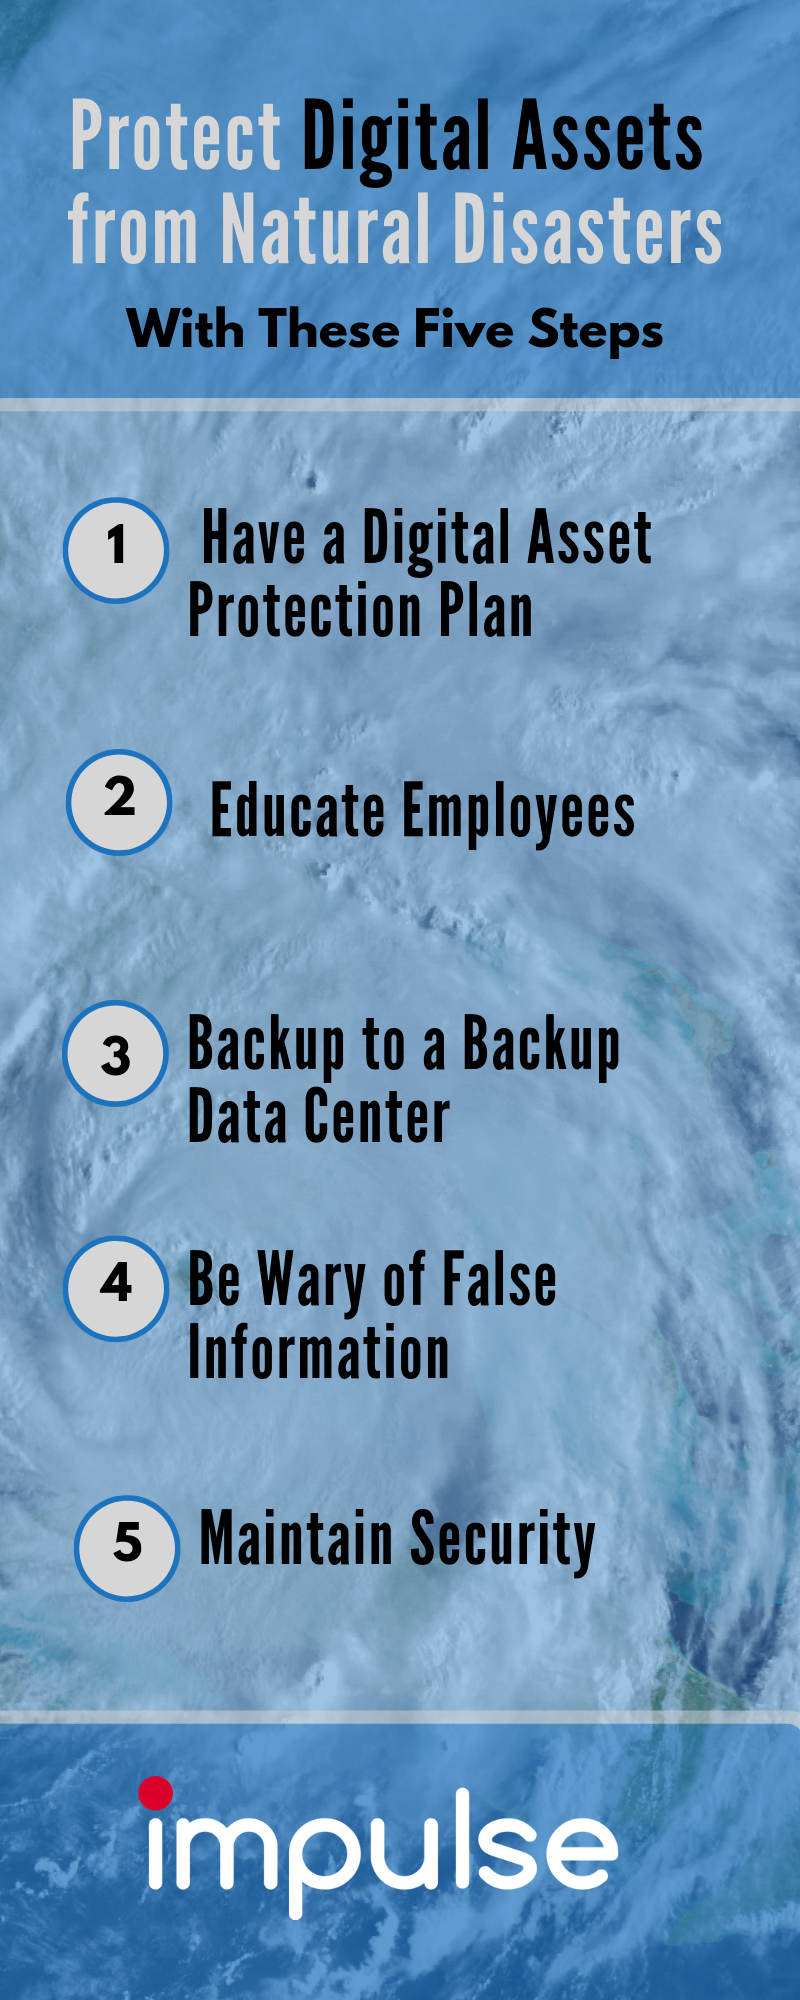 The five steps to protect digital assets from natural disasters: have a digital asset protection plan, educate employees, backup to a backup data center, be wary of false information, maintain security.